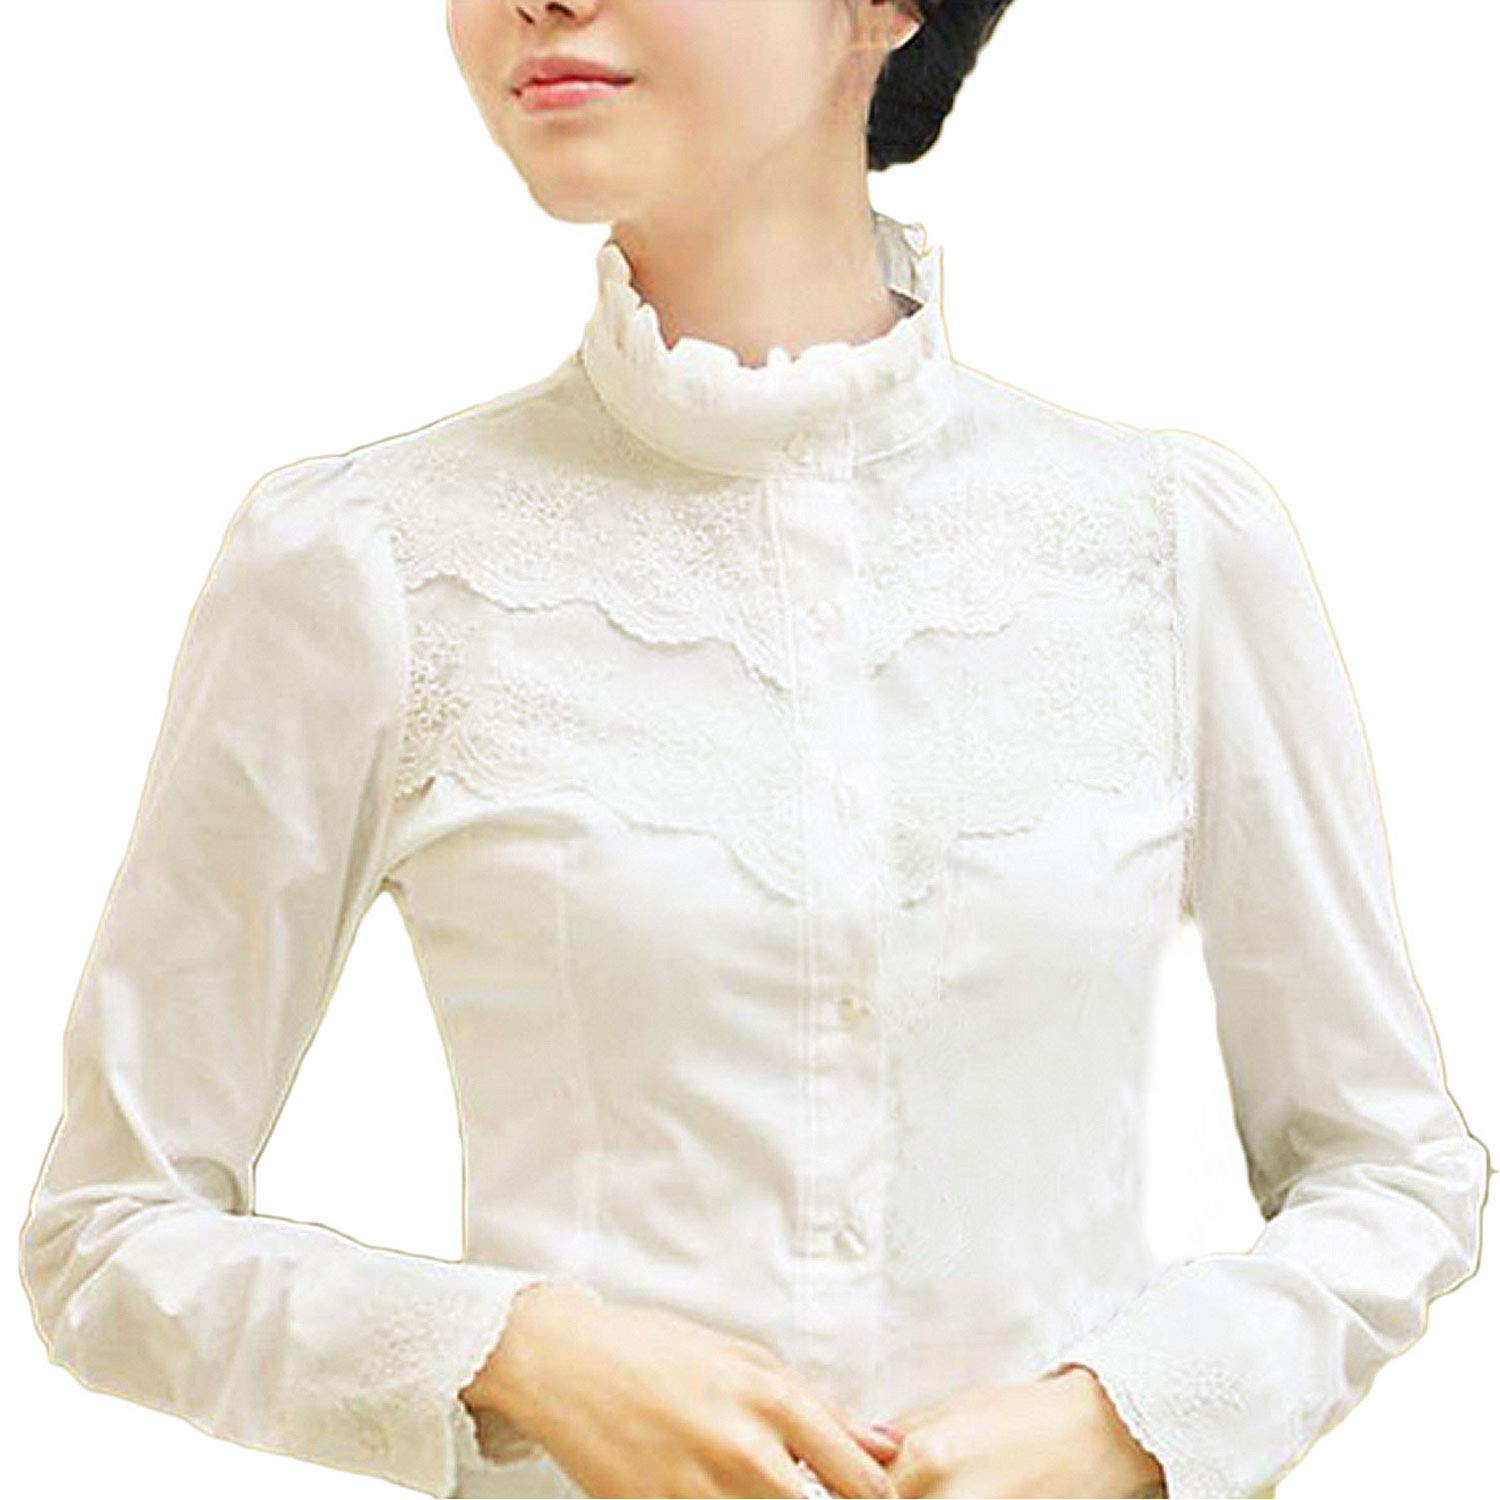 Victorian Blouses, Tops, Shirts, Sweaters Nonbrand Winter Office Long Sleeve Shirt Lace Top Womens Vintage Blouse Ladies Victorian Tops £15.42 AT vintagedancer.com